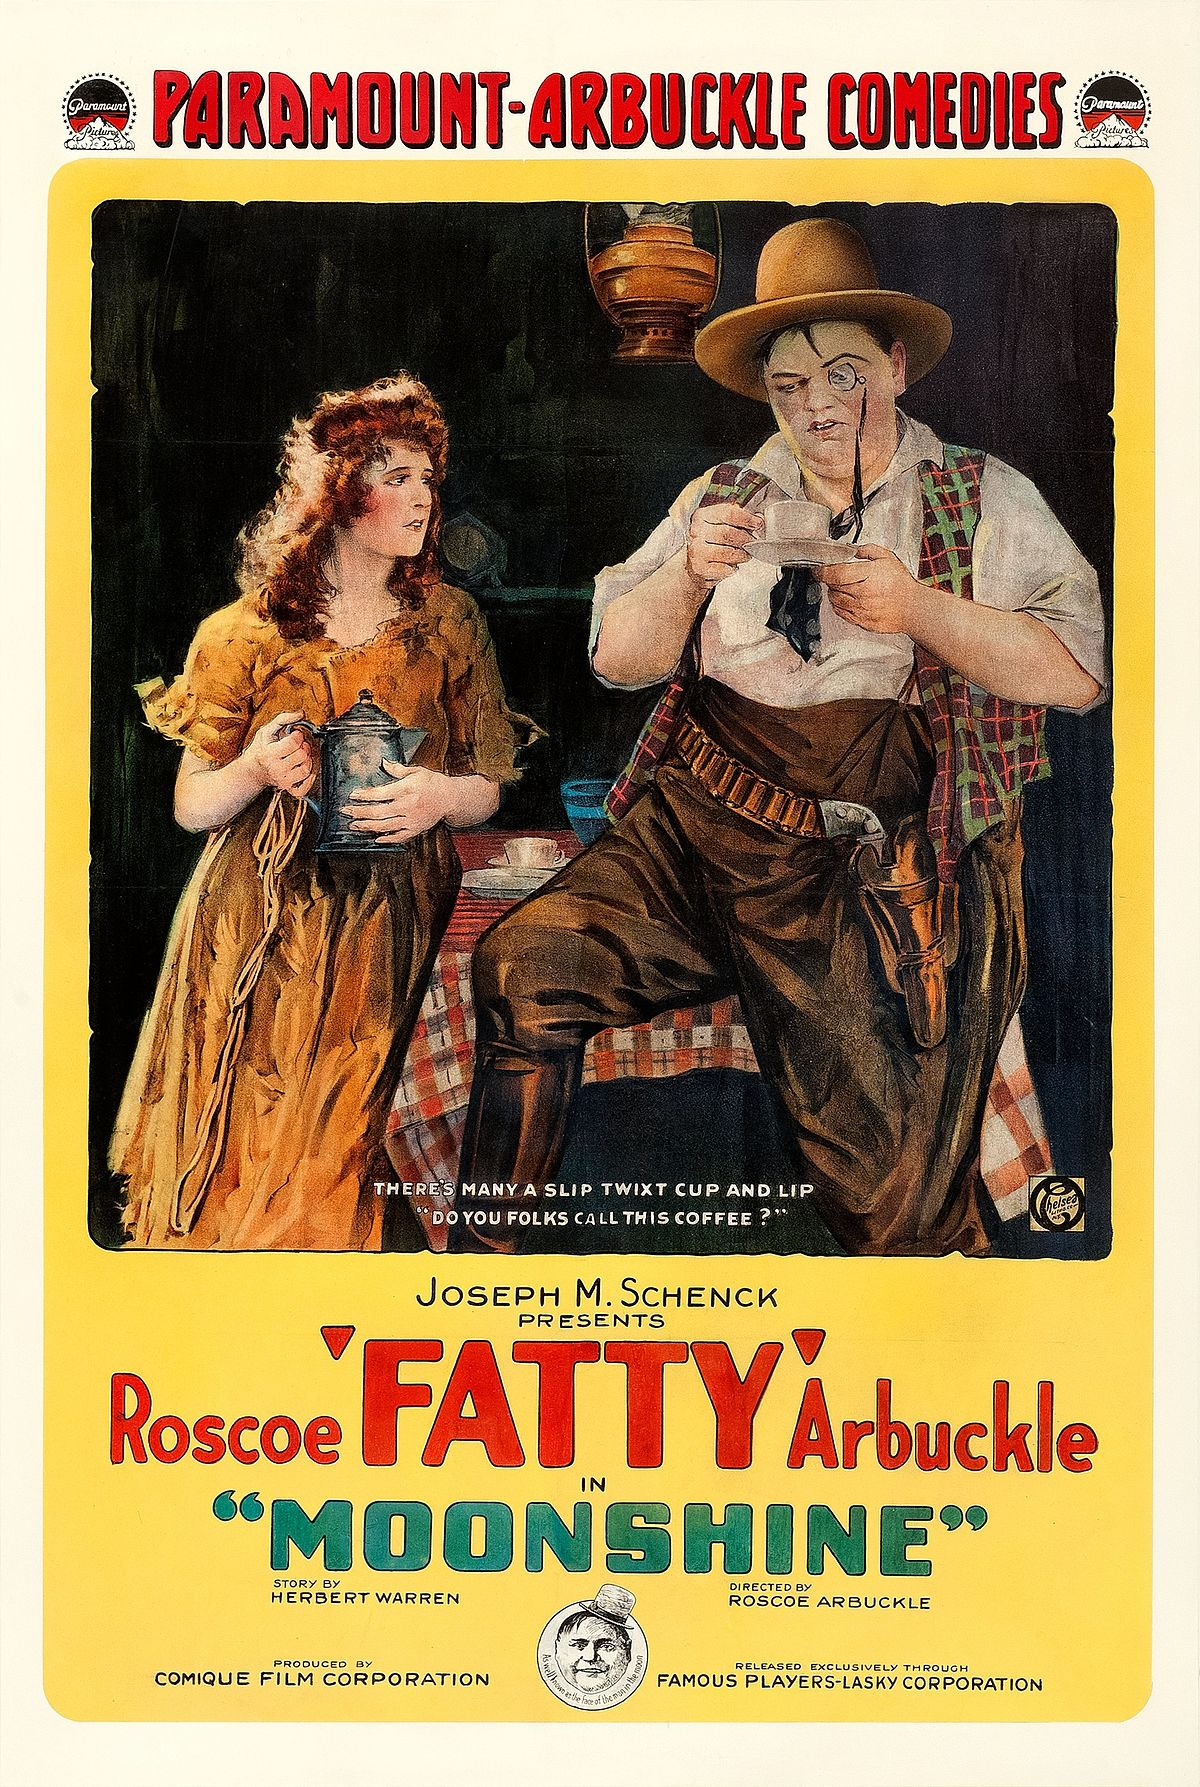 Moonshine (1918 film) - Wikipedia